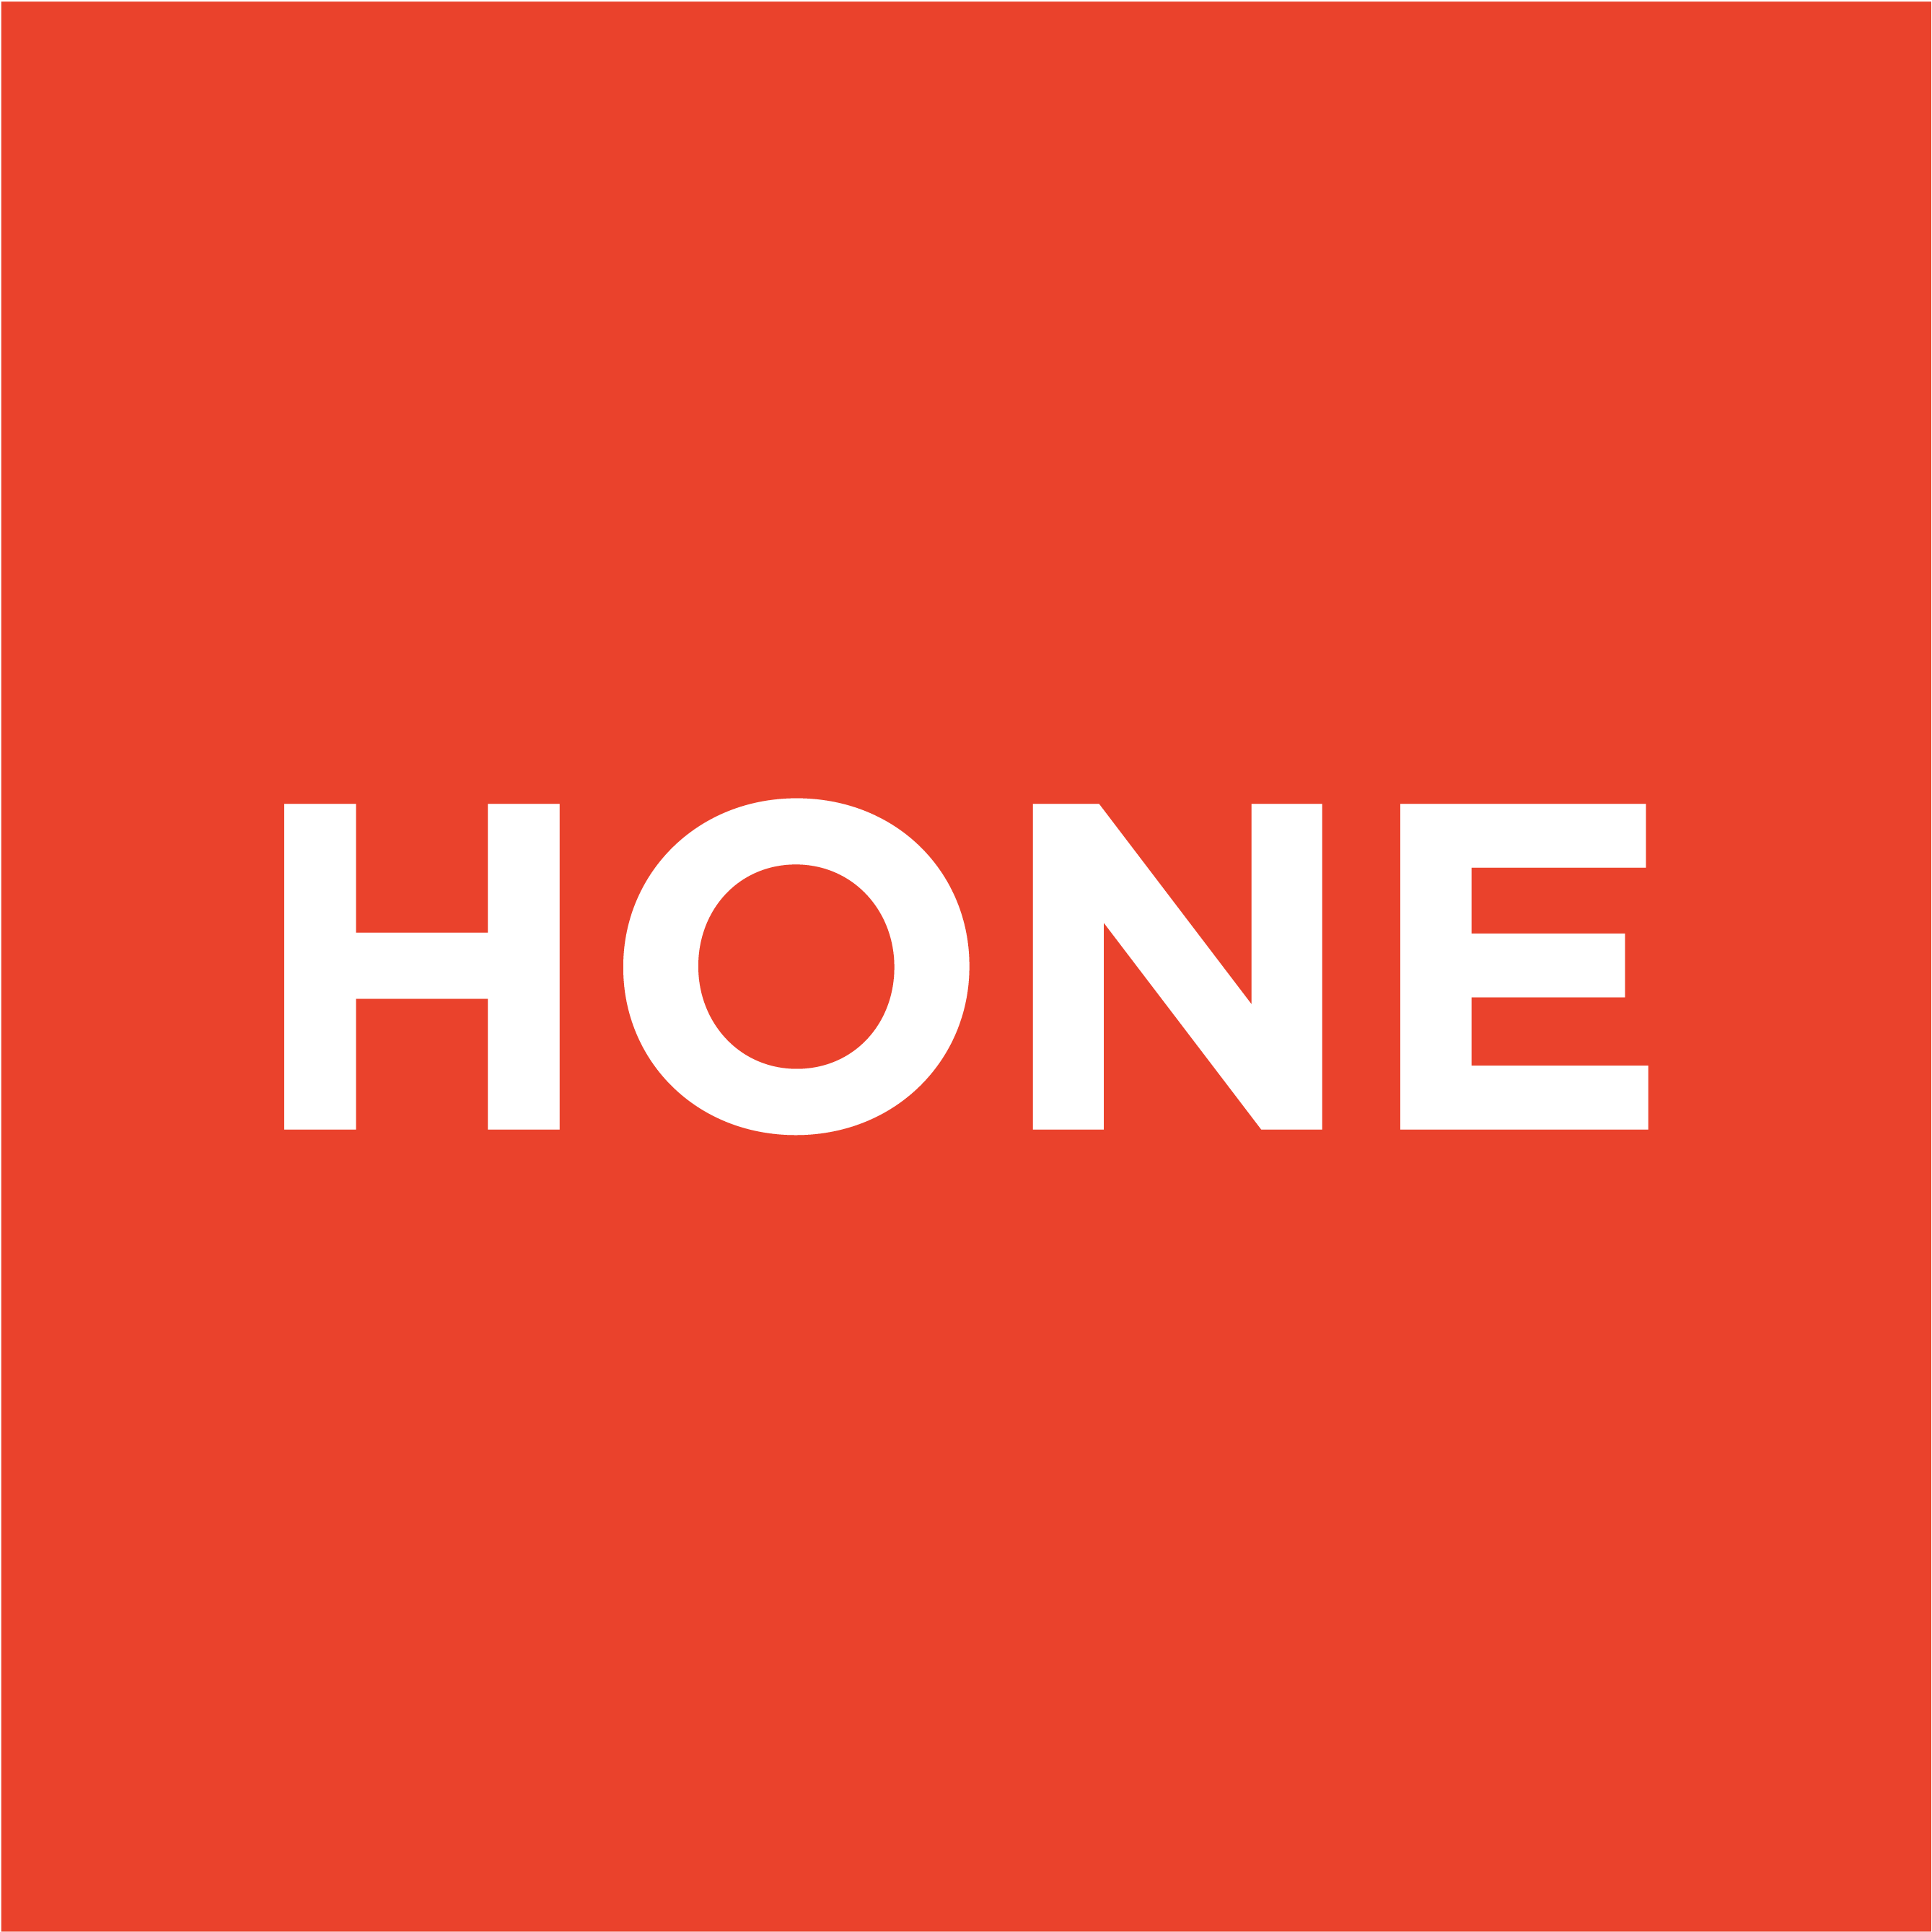 HONE Digital Marketing